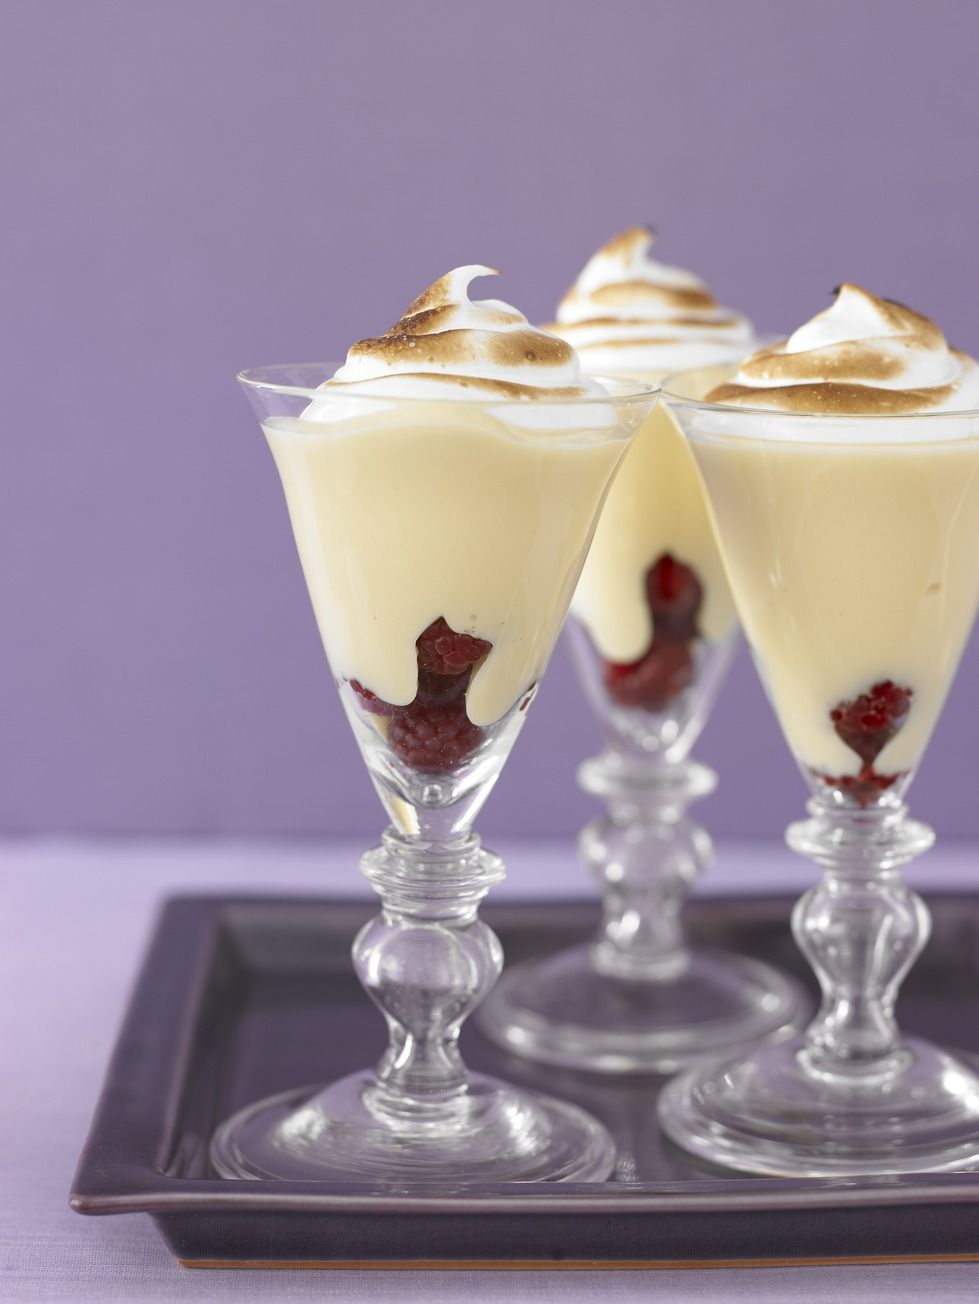 Add sweet sophistication to classic lemon meringue pie with these parfaits piled high with fresh raspberries, creamy lemon custard and a lightly browned meringue topping. Get the recipe.